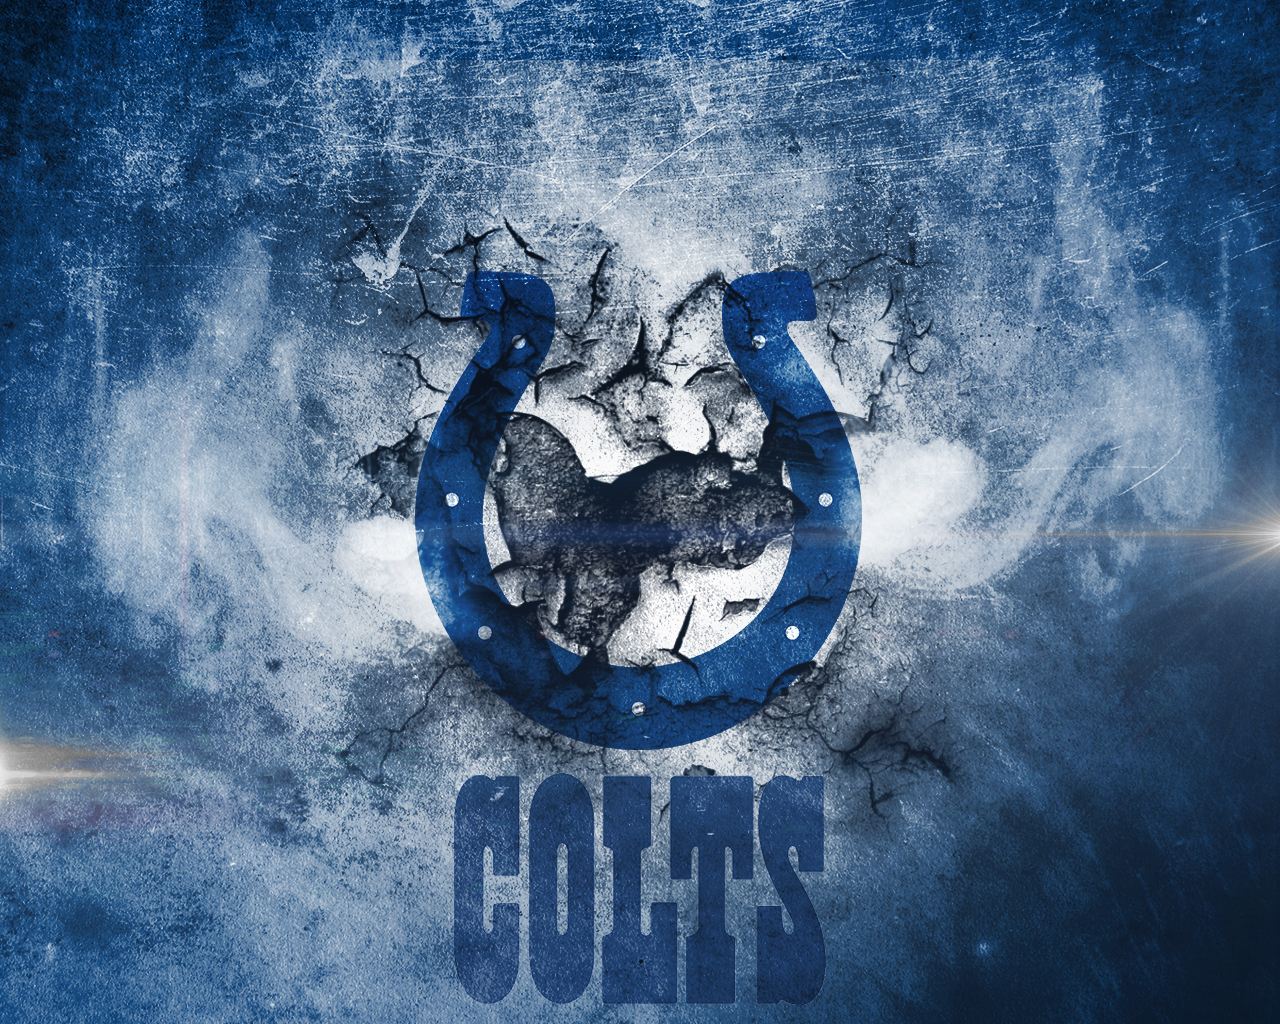 Indianapolis Colts wallpapers Indianapolis Colts background Page 2 1280x1024